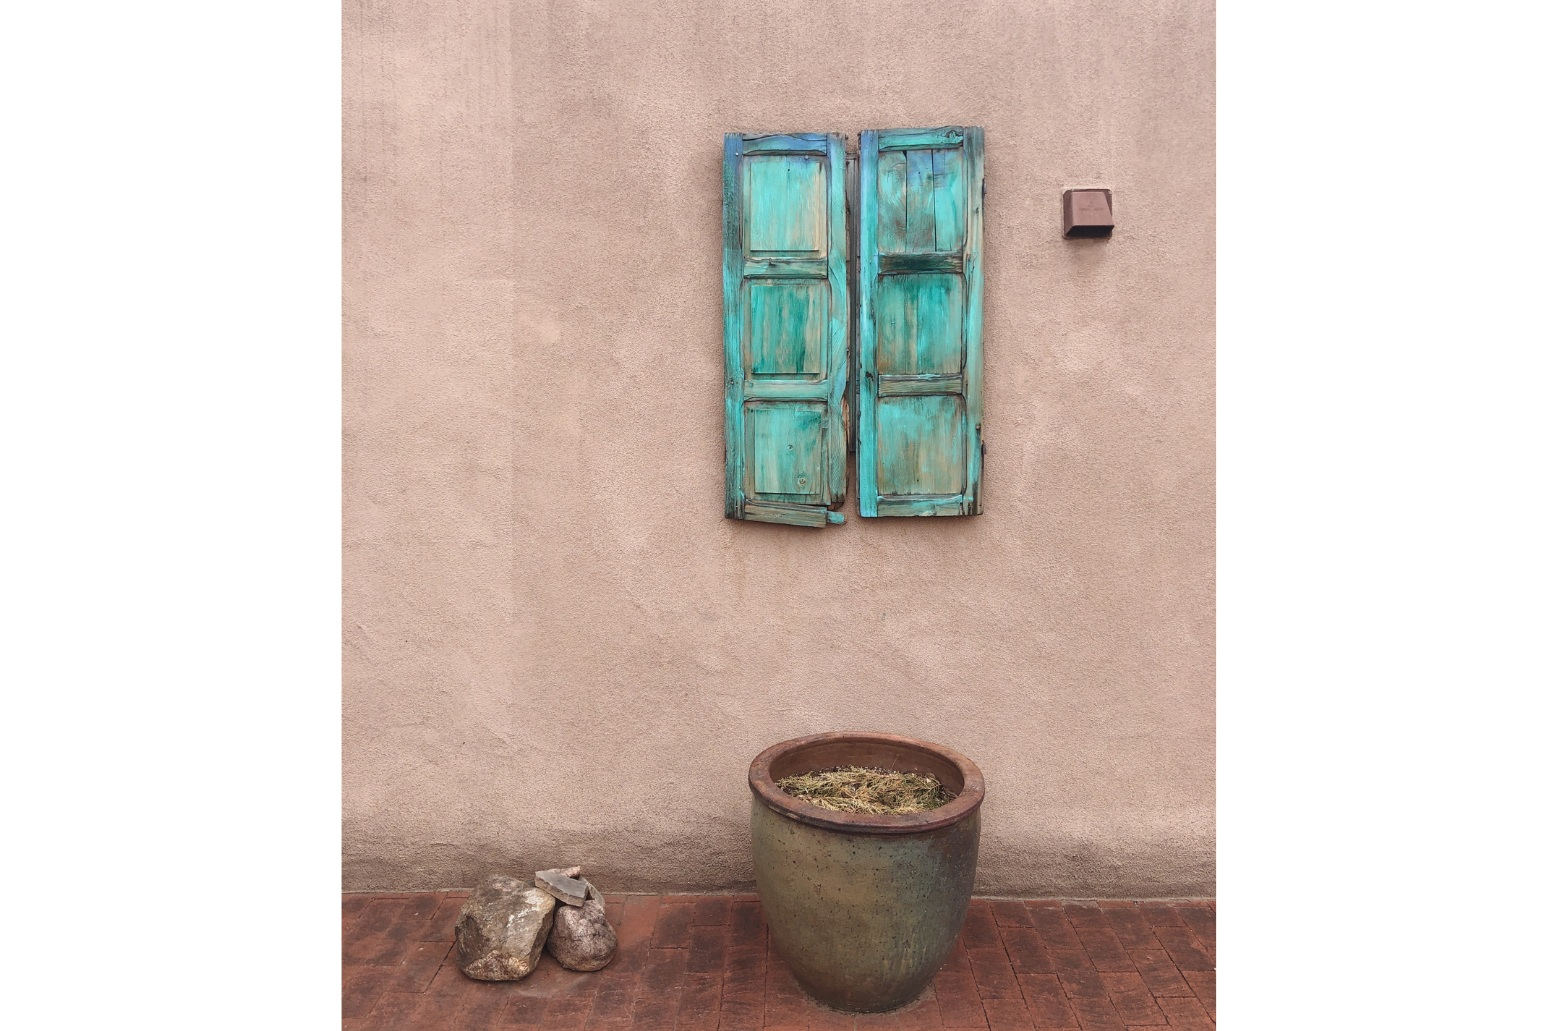 'The most photographed shutters in Santa Fe', according to a local artist.